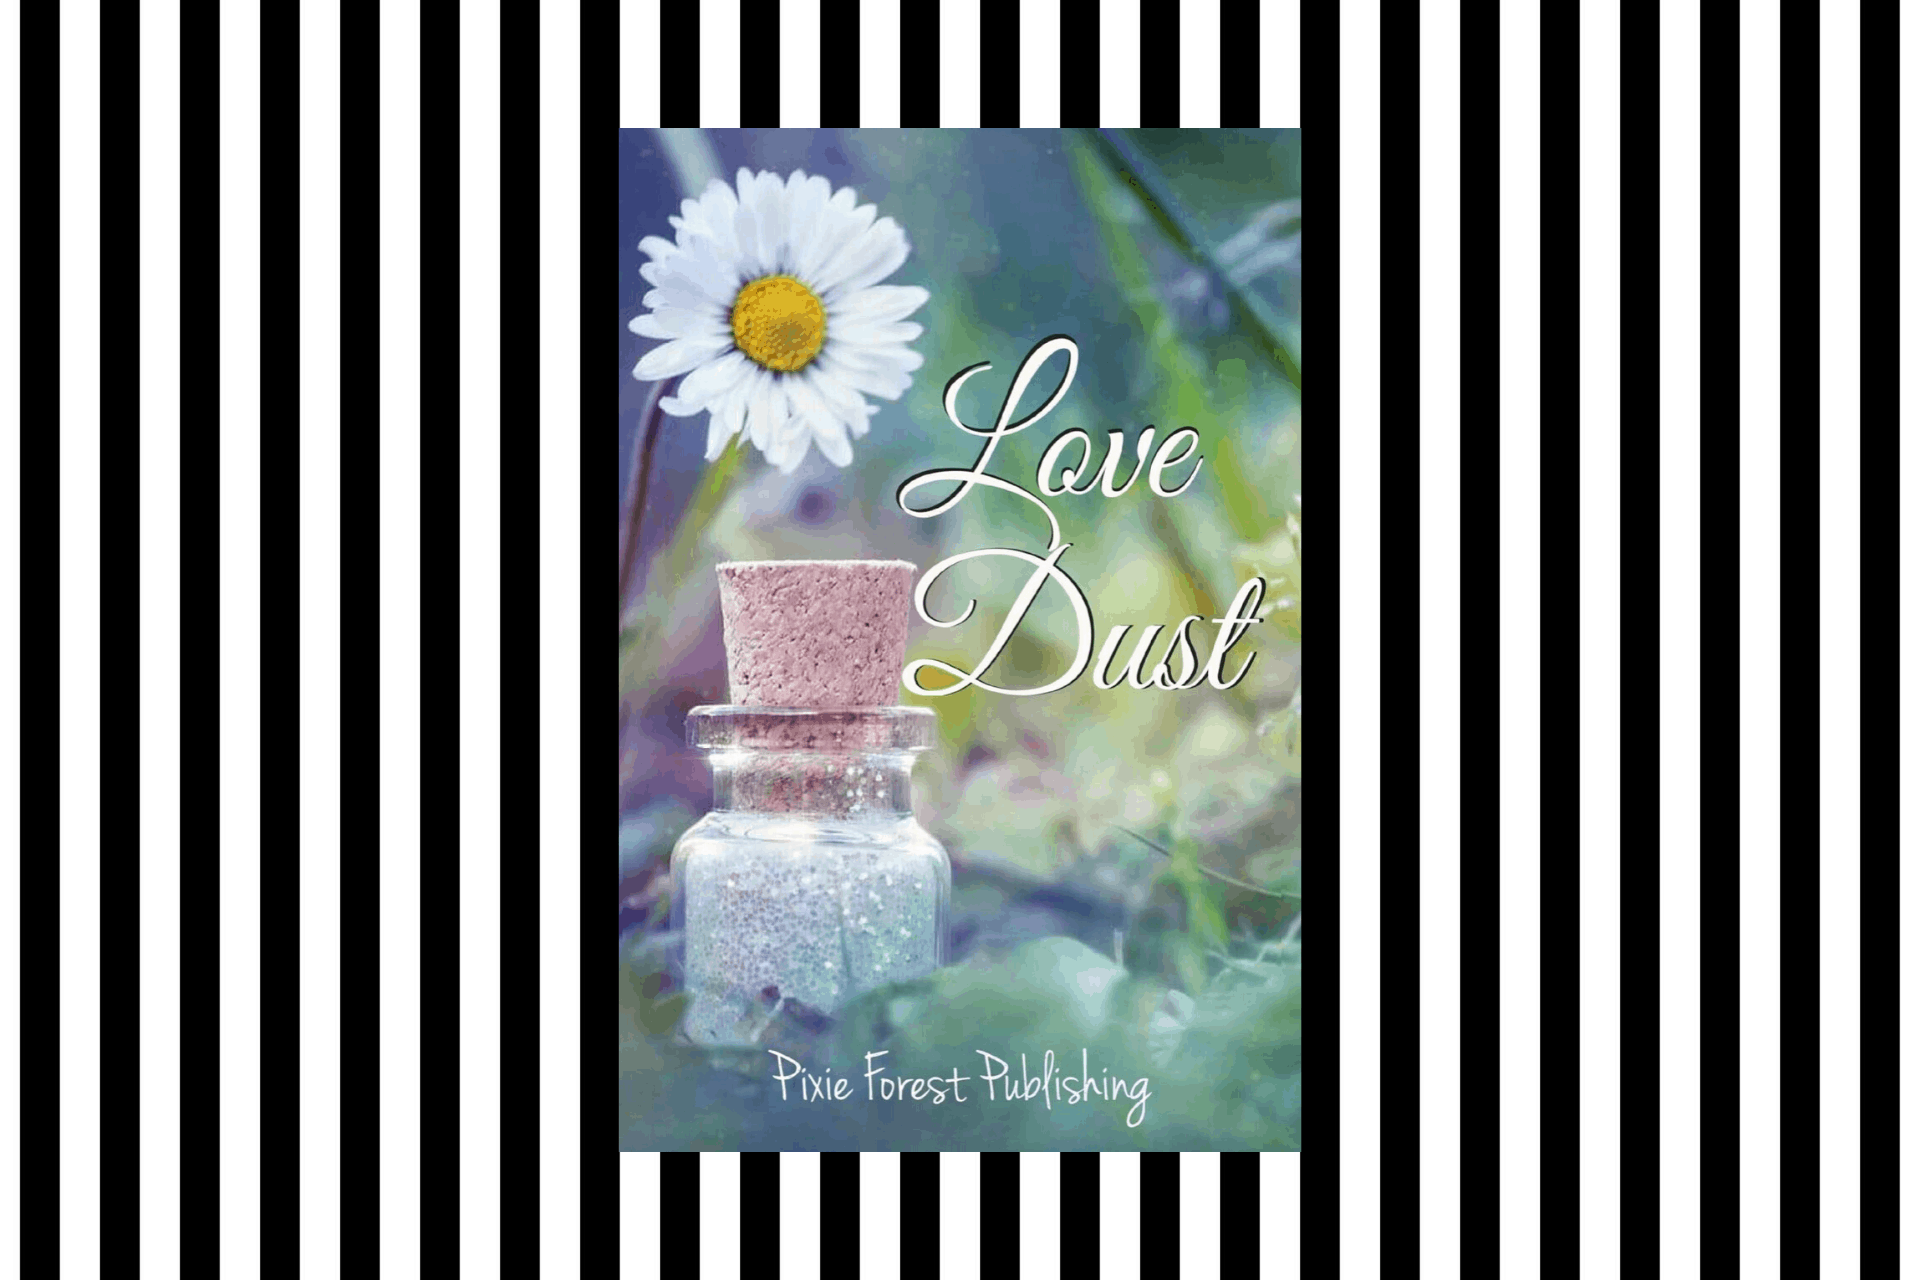 The cover of Love Dust by Pixie Forest Publishing